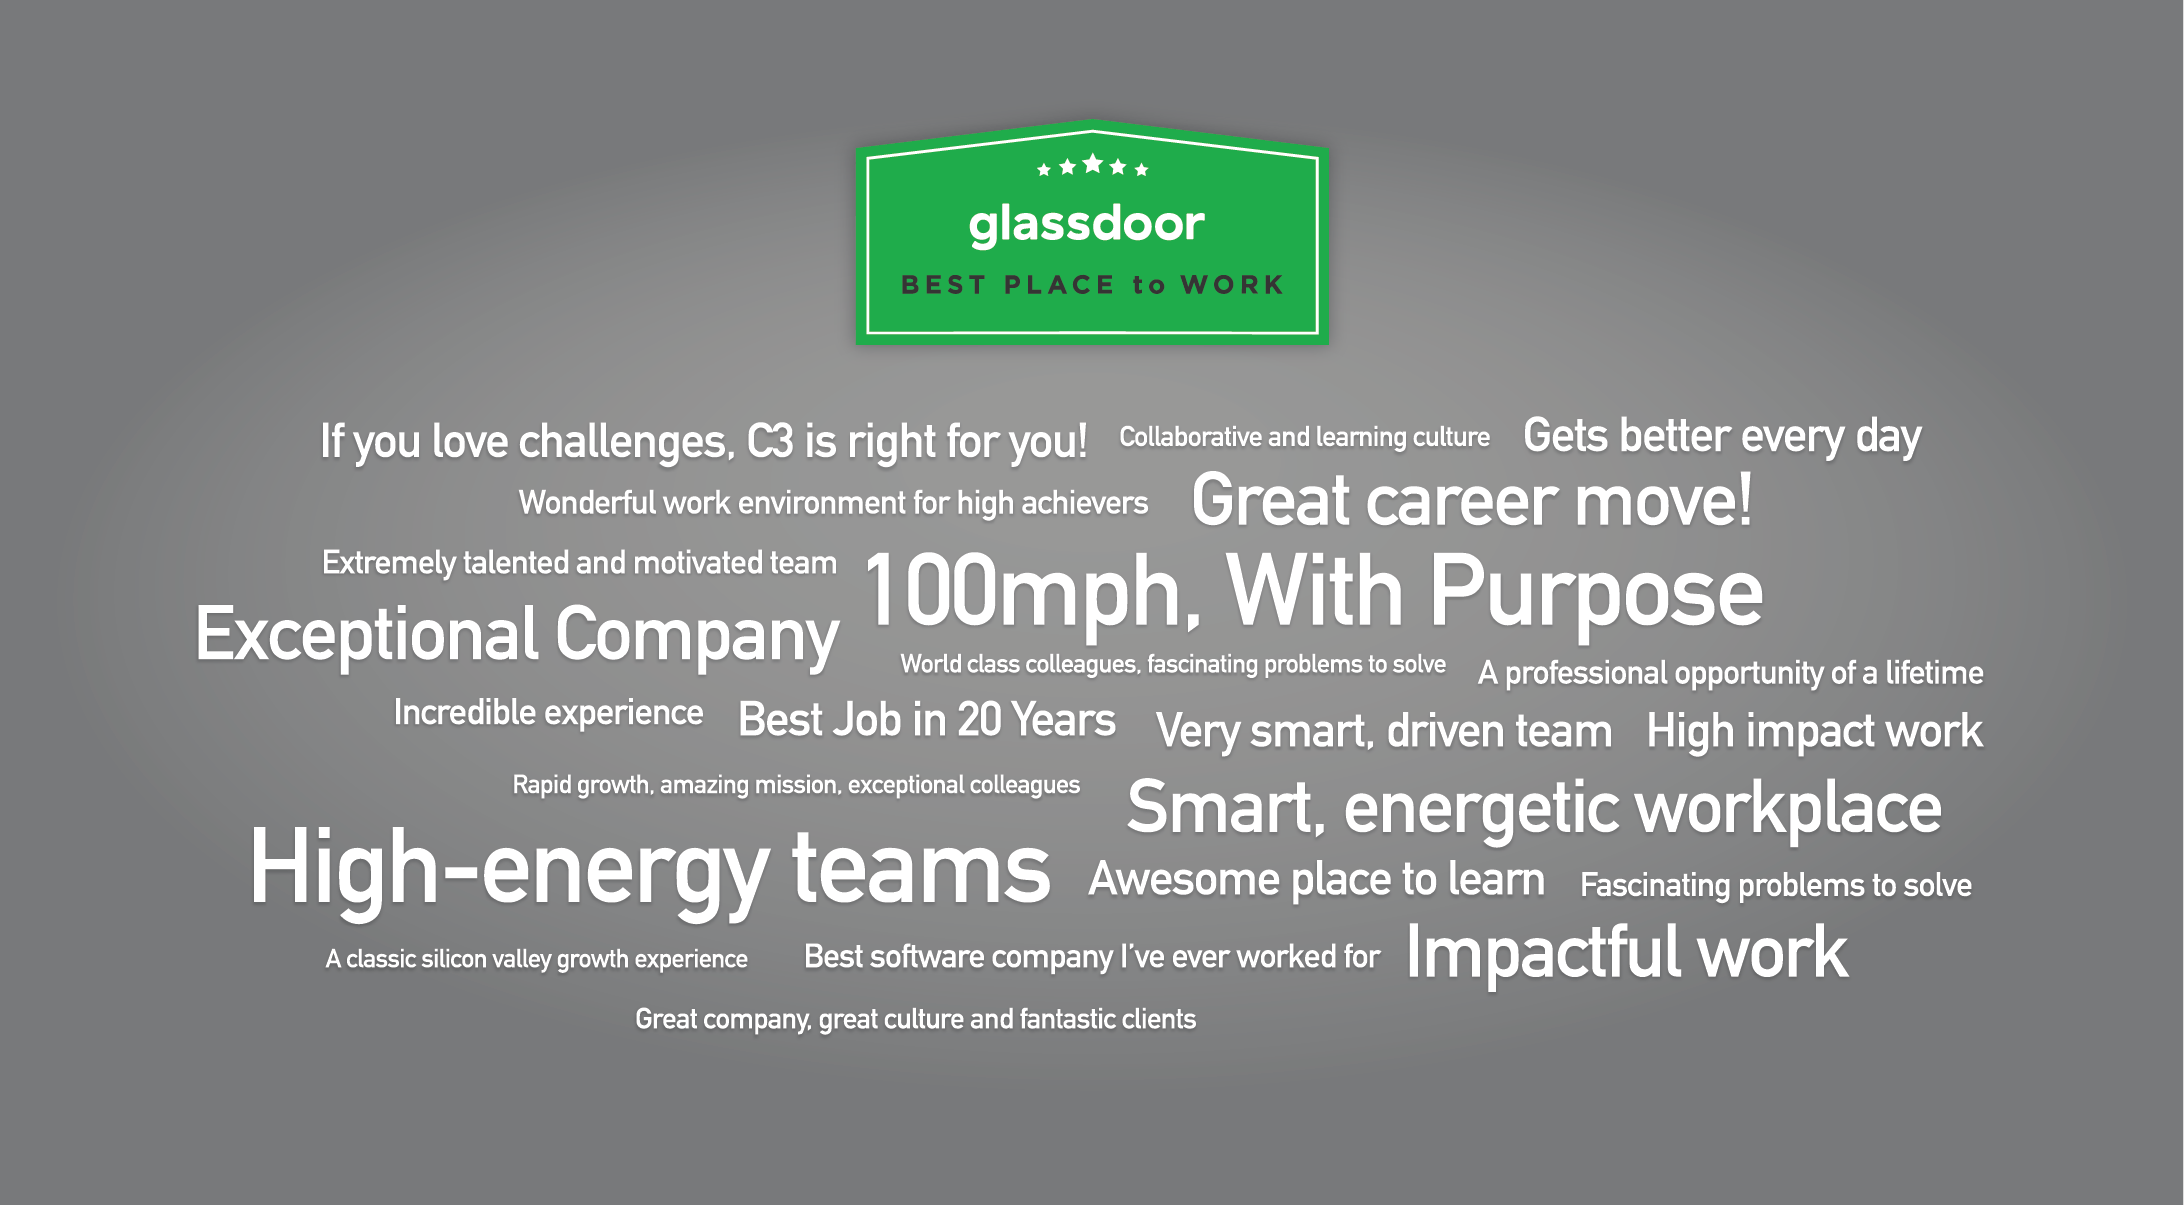 Glassdoor Best Place to Work